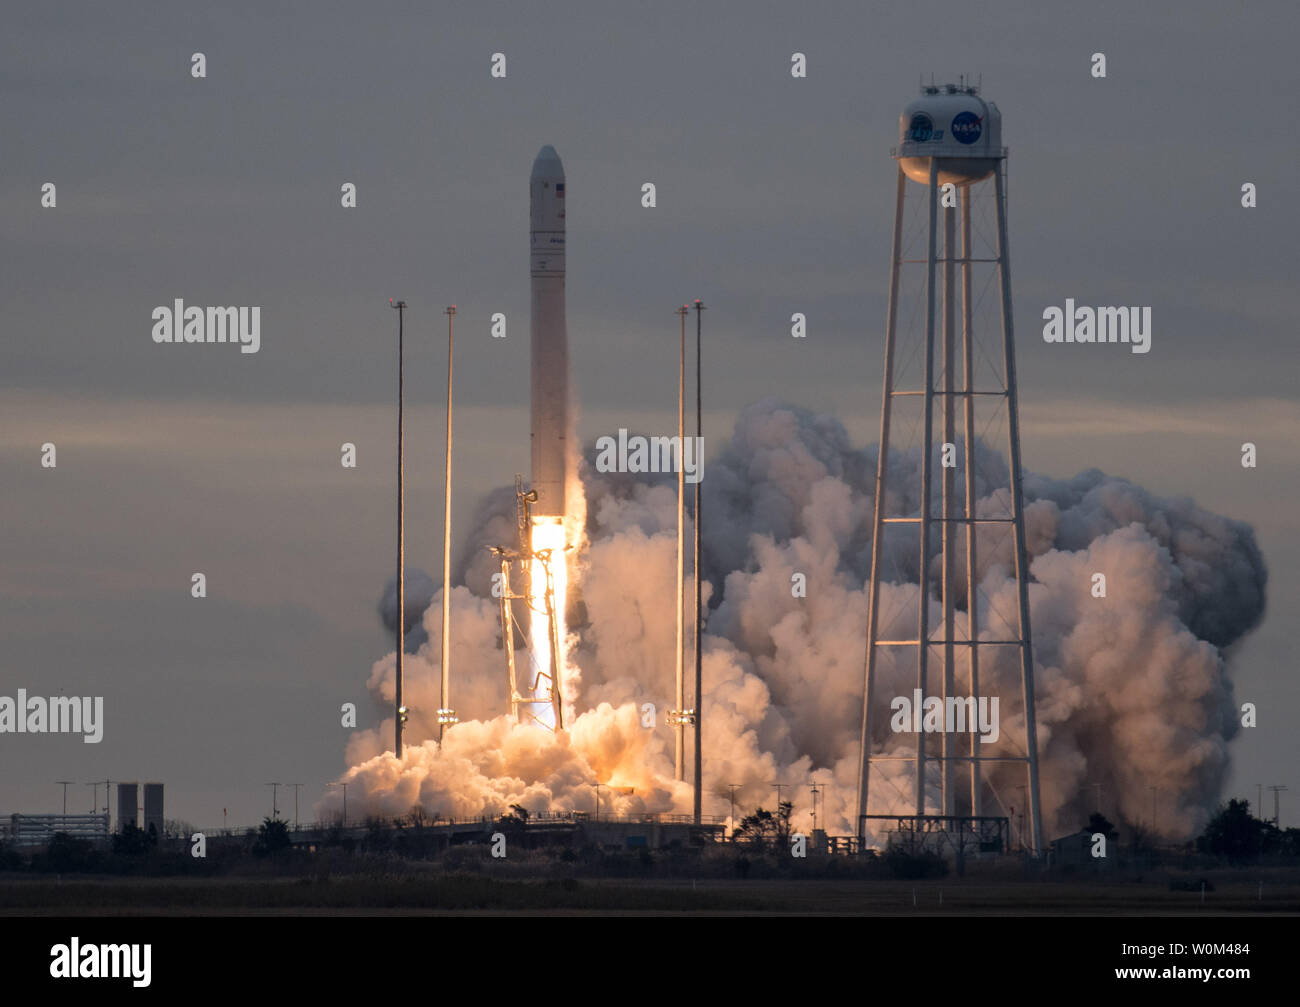 The Orbital ATK Antares rocket, with the Cygnus spacecraft onboard, launches from Pad-0A, on November 12, 2017 at NASA's Wallops Flight Facility in Virginia. Orbital ATK's eighth contracted cargo resupply mission with NASA to the International Space Station will deliver approximately 7,400 pounds of science and research, crew supplies and vehicle hardware to the orbital laboratory and its crew. NASA Photo by Bill Ingalls/UPI Stock Photo